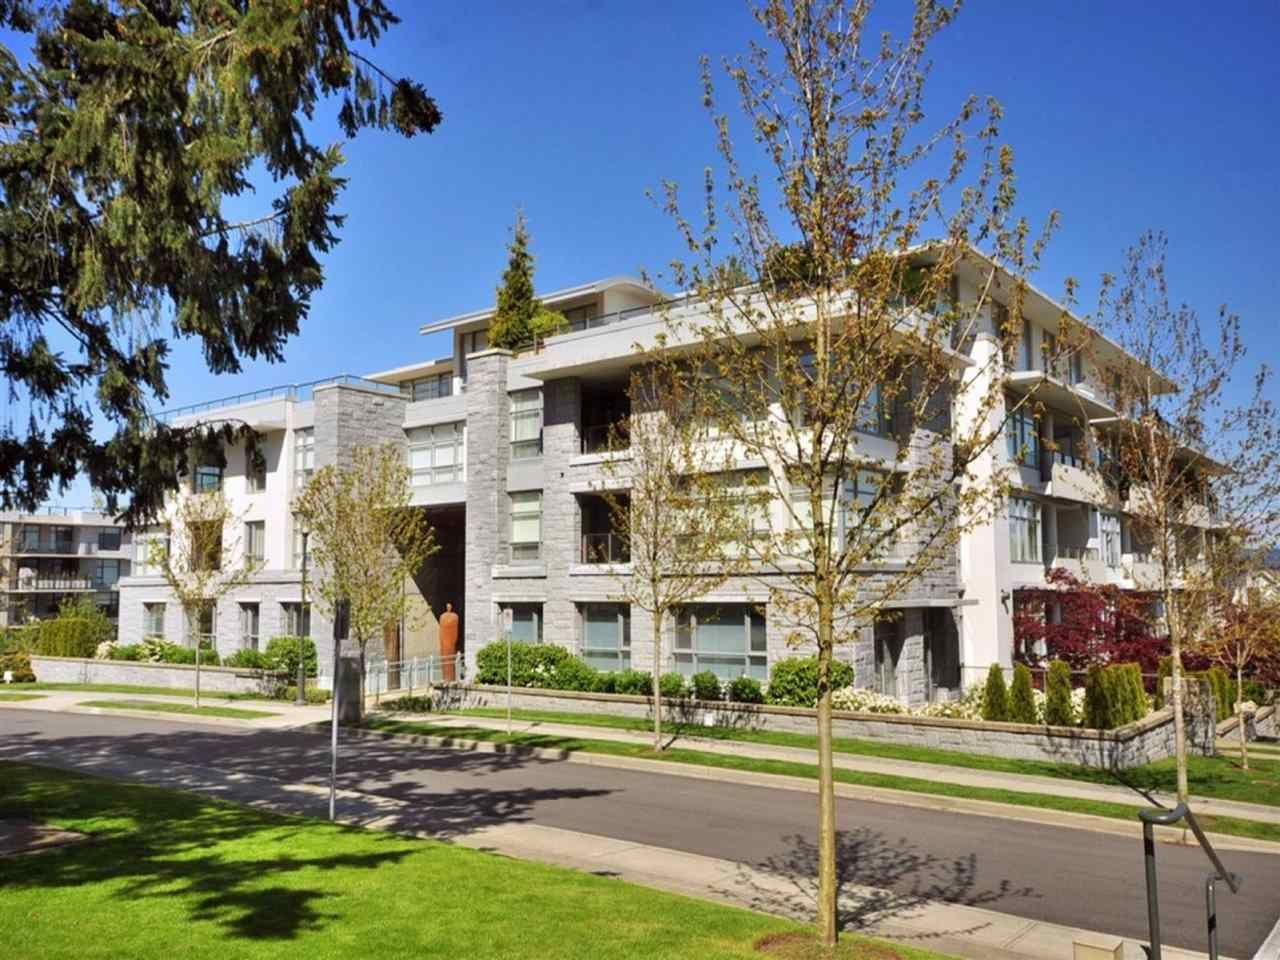 """Main Photo: 107 6015 IONA Drive in Vancouver: University VW Condo for sale in """"CHANCELLOR HOUSE"""" (Vancouver West)  : MLS®# R2587601"""